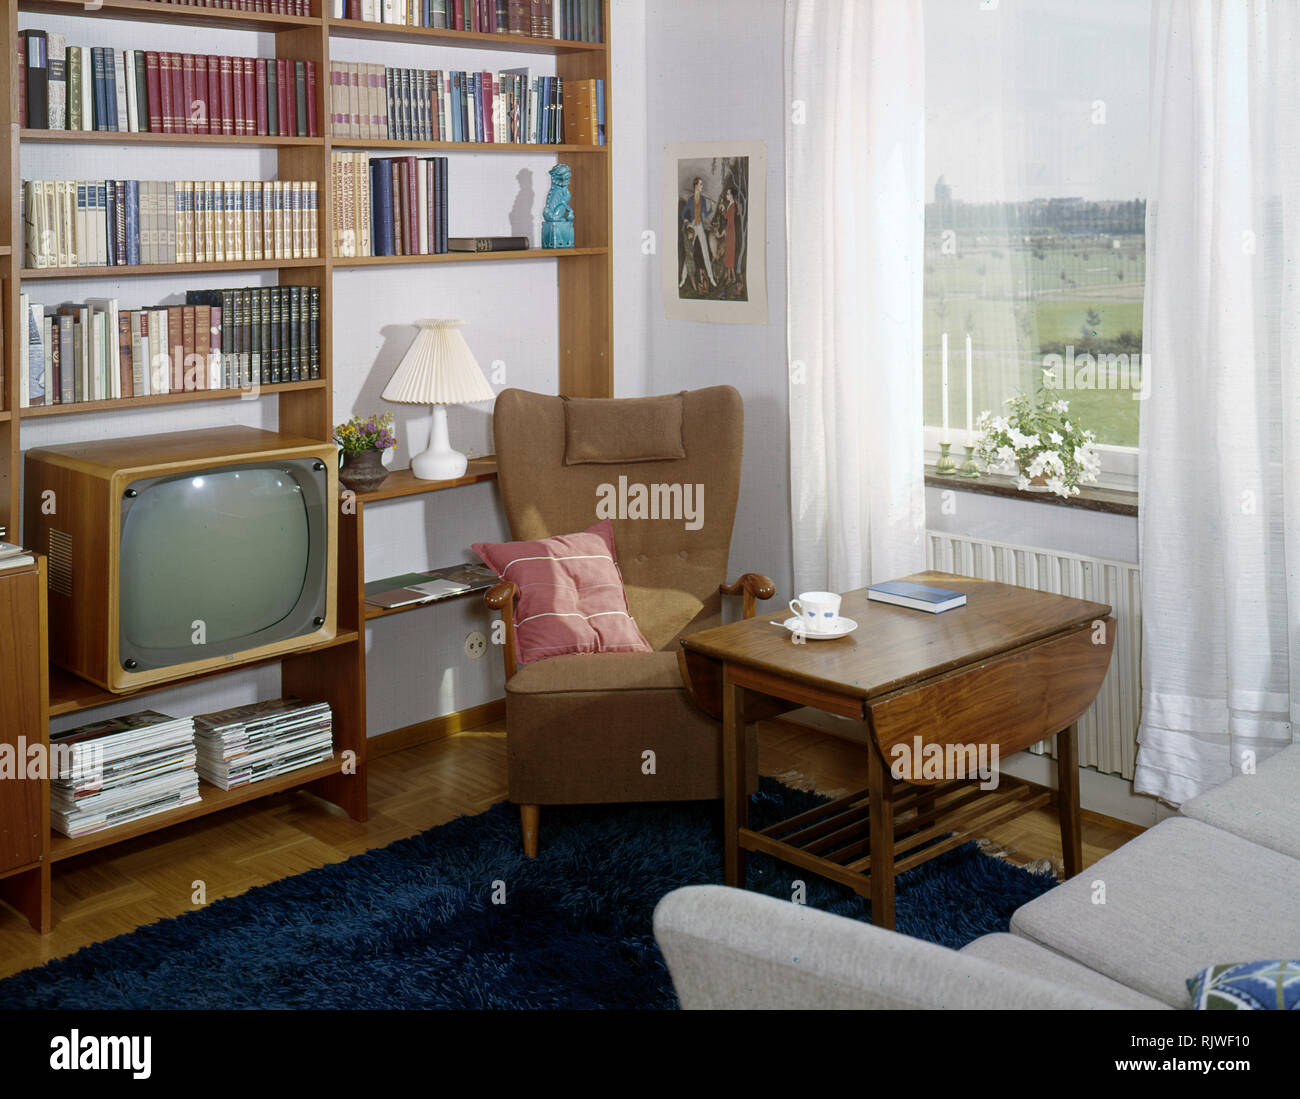 Television in the 1950s. Interior from a room with a typical 50s television set in the bookshelf.  ref BV101-5  Sweden 1958 - Stock Image